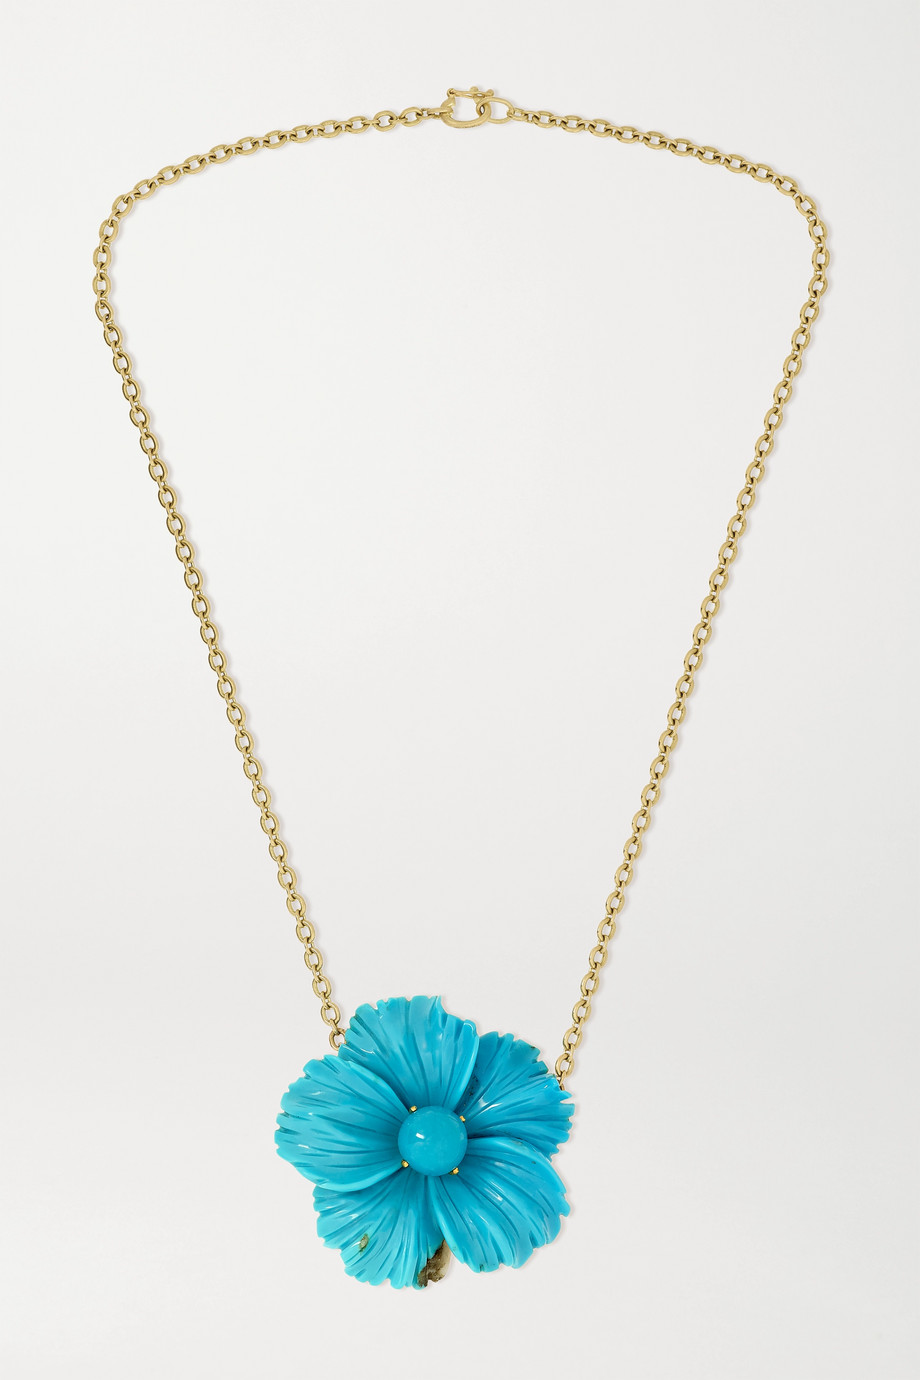 Irene Neuwirth Tropical Flower 18-karat gold turquoise necklace